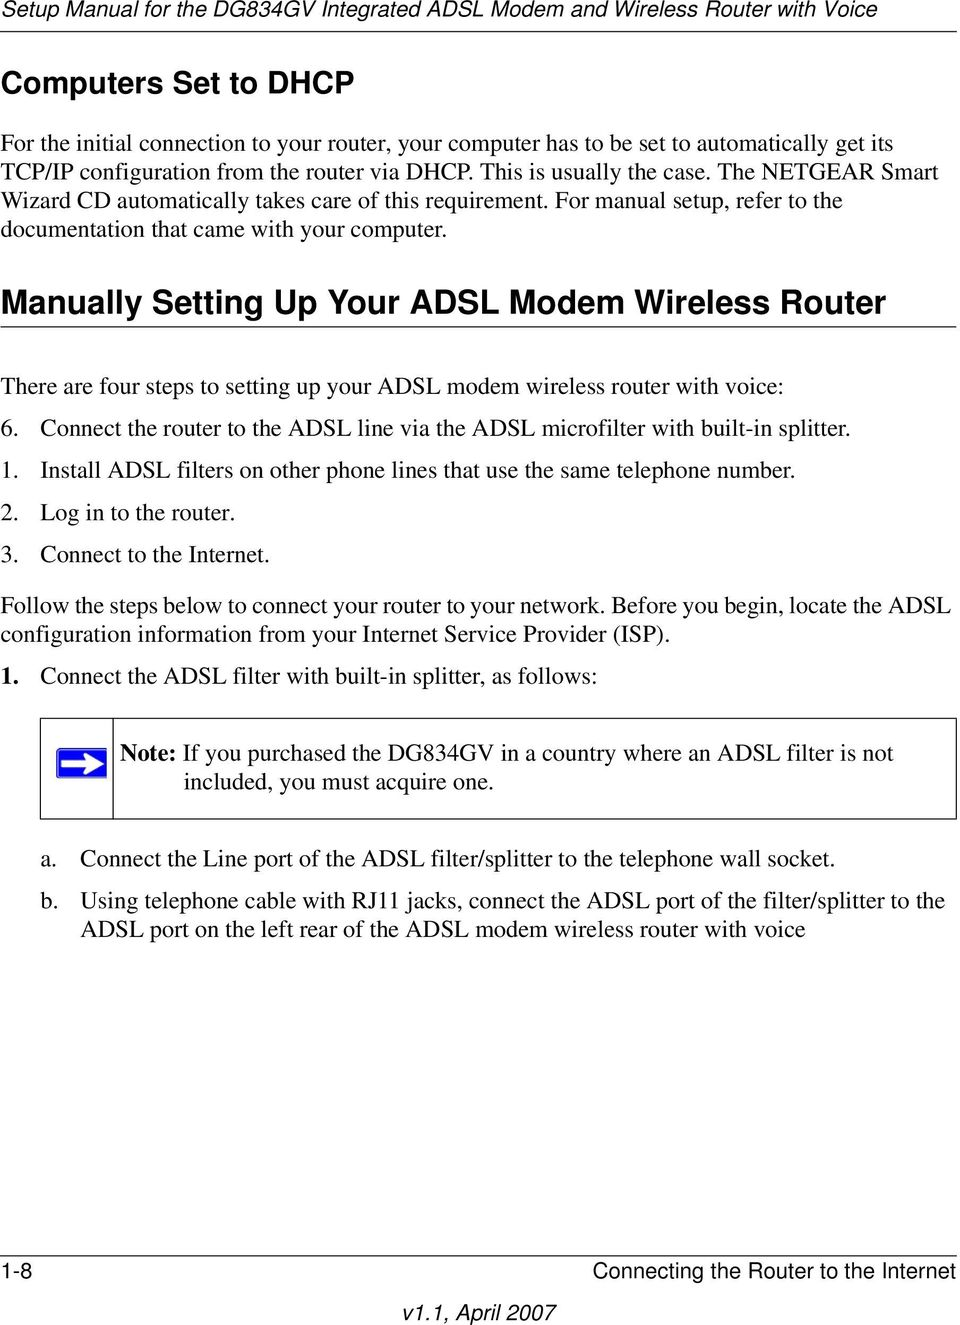 Manually Setting Up Your ADSL Modem Wireless Router There are four steps to setting up your ADSL modem wireless router with voice: 6.